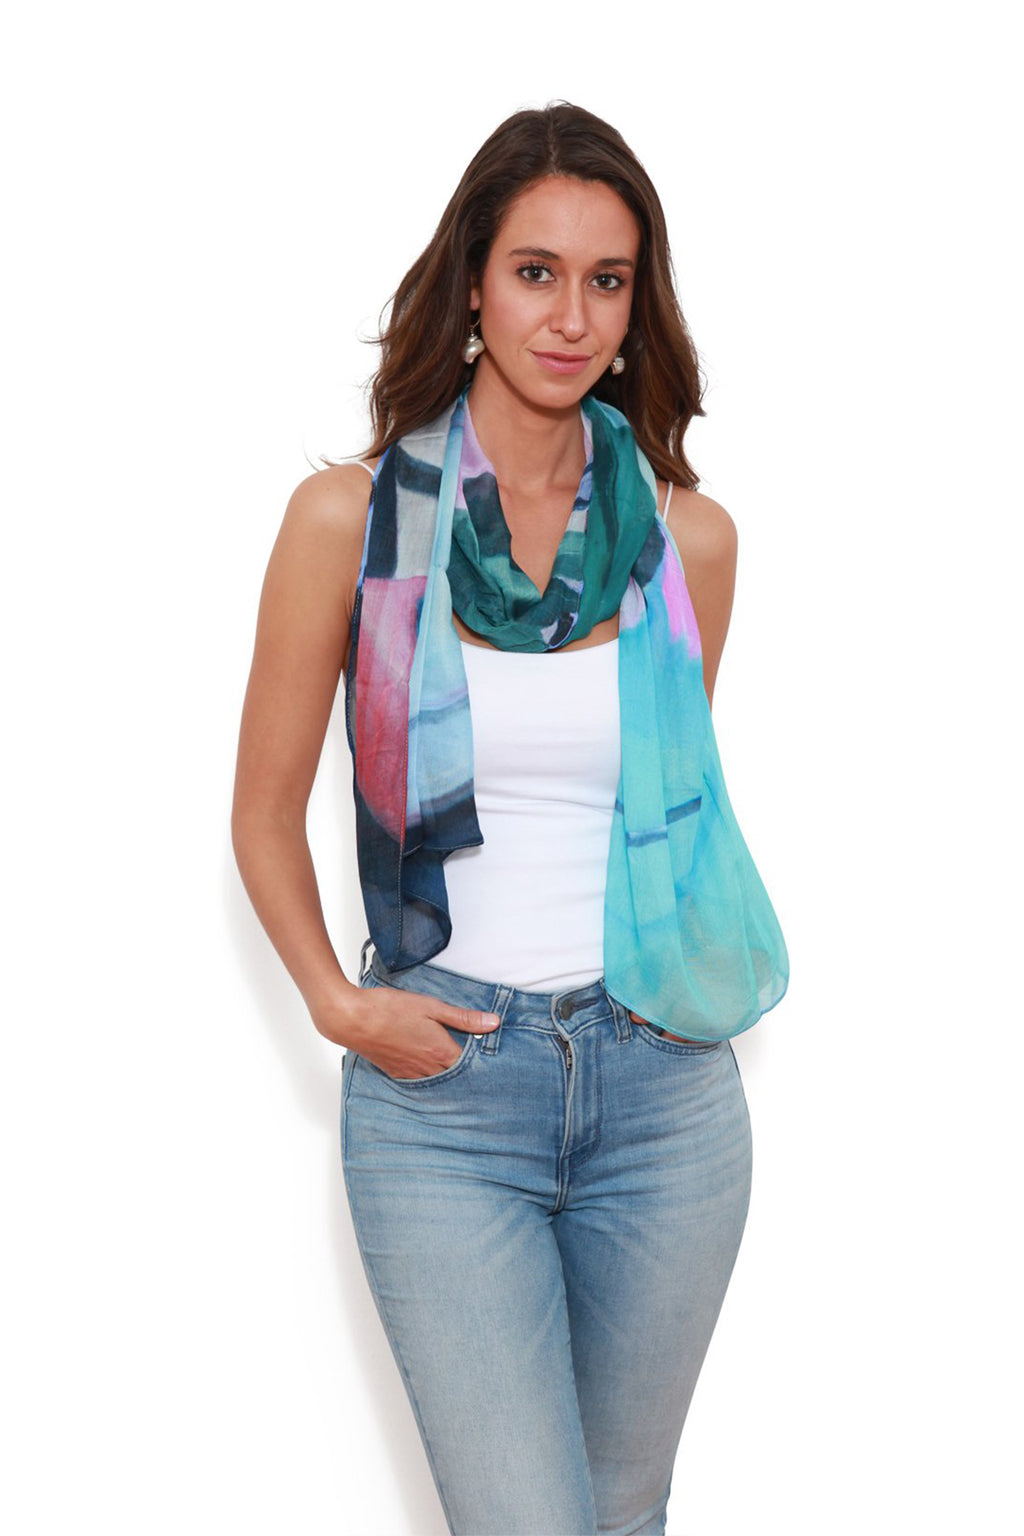 The Artists Label Vino Scarf by Melanie Vugich | Buy Online at Weekends